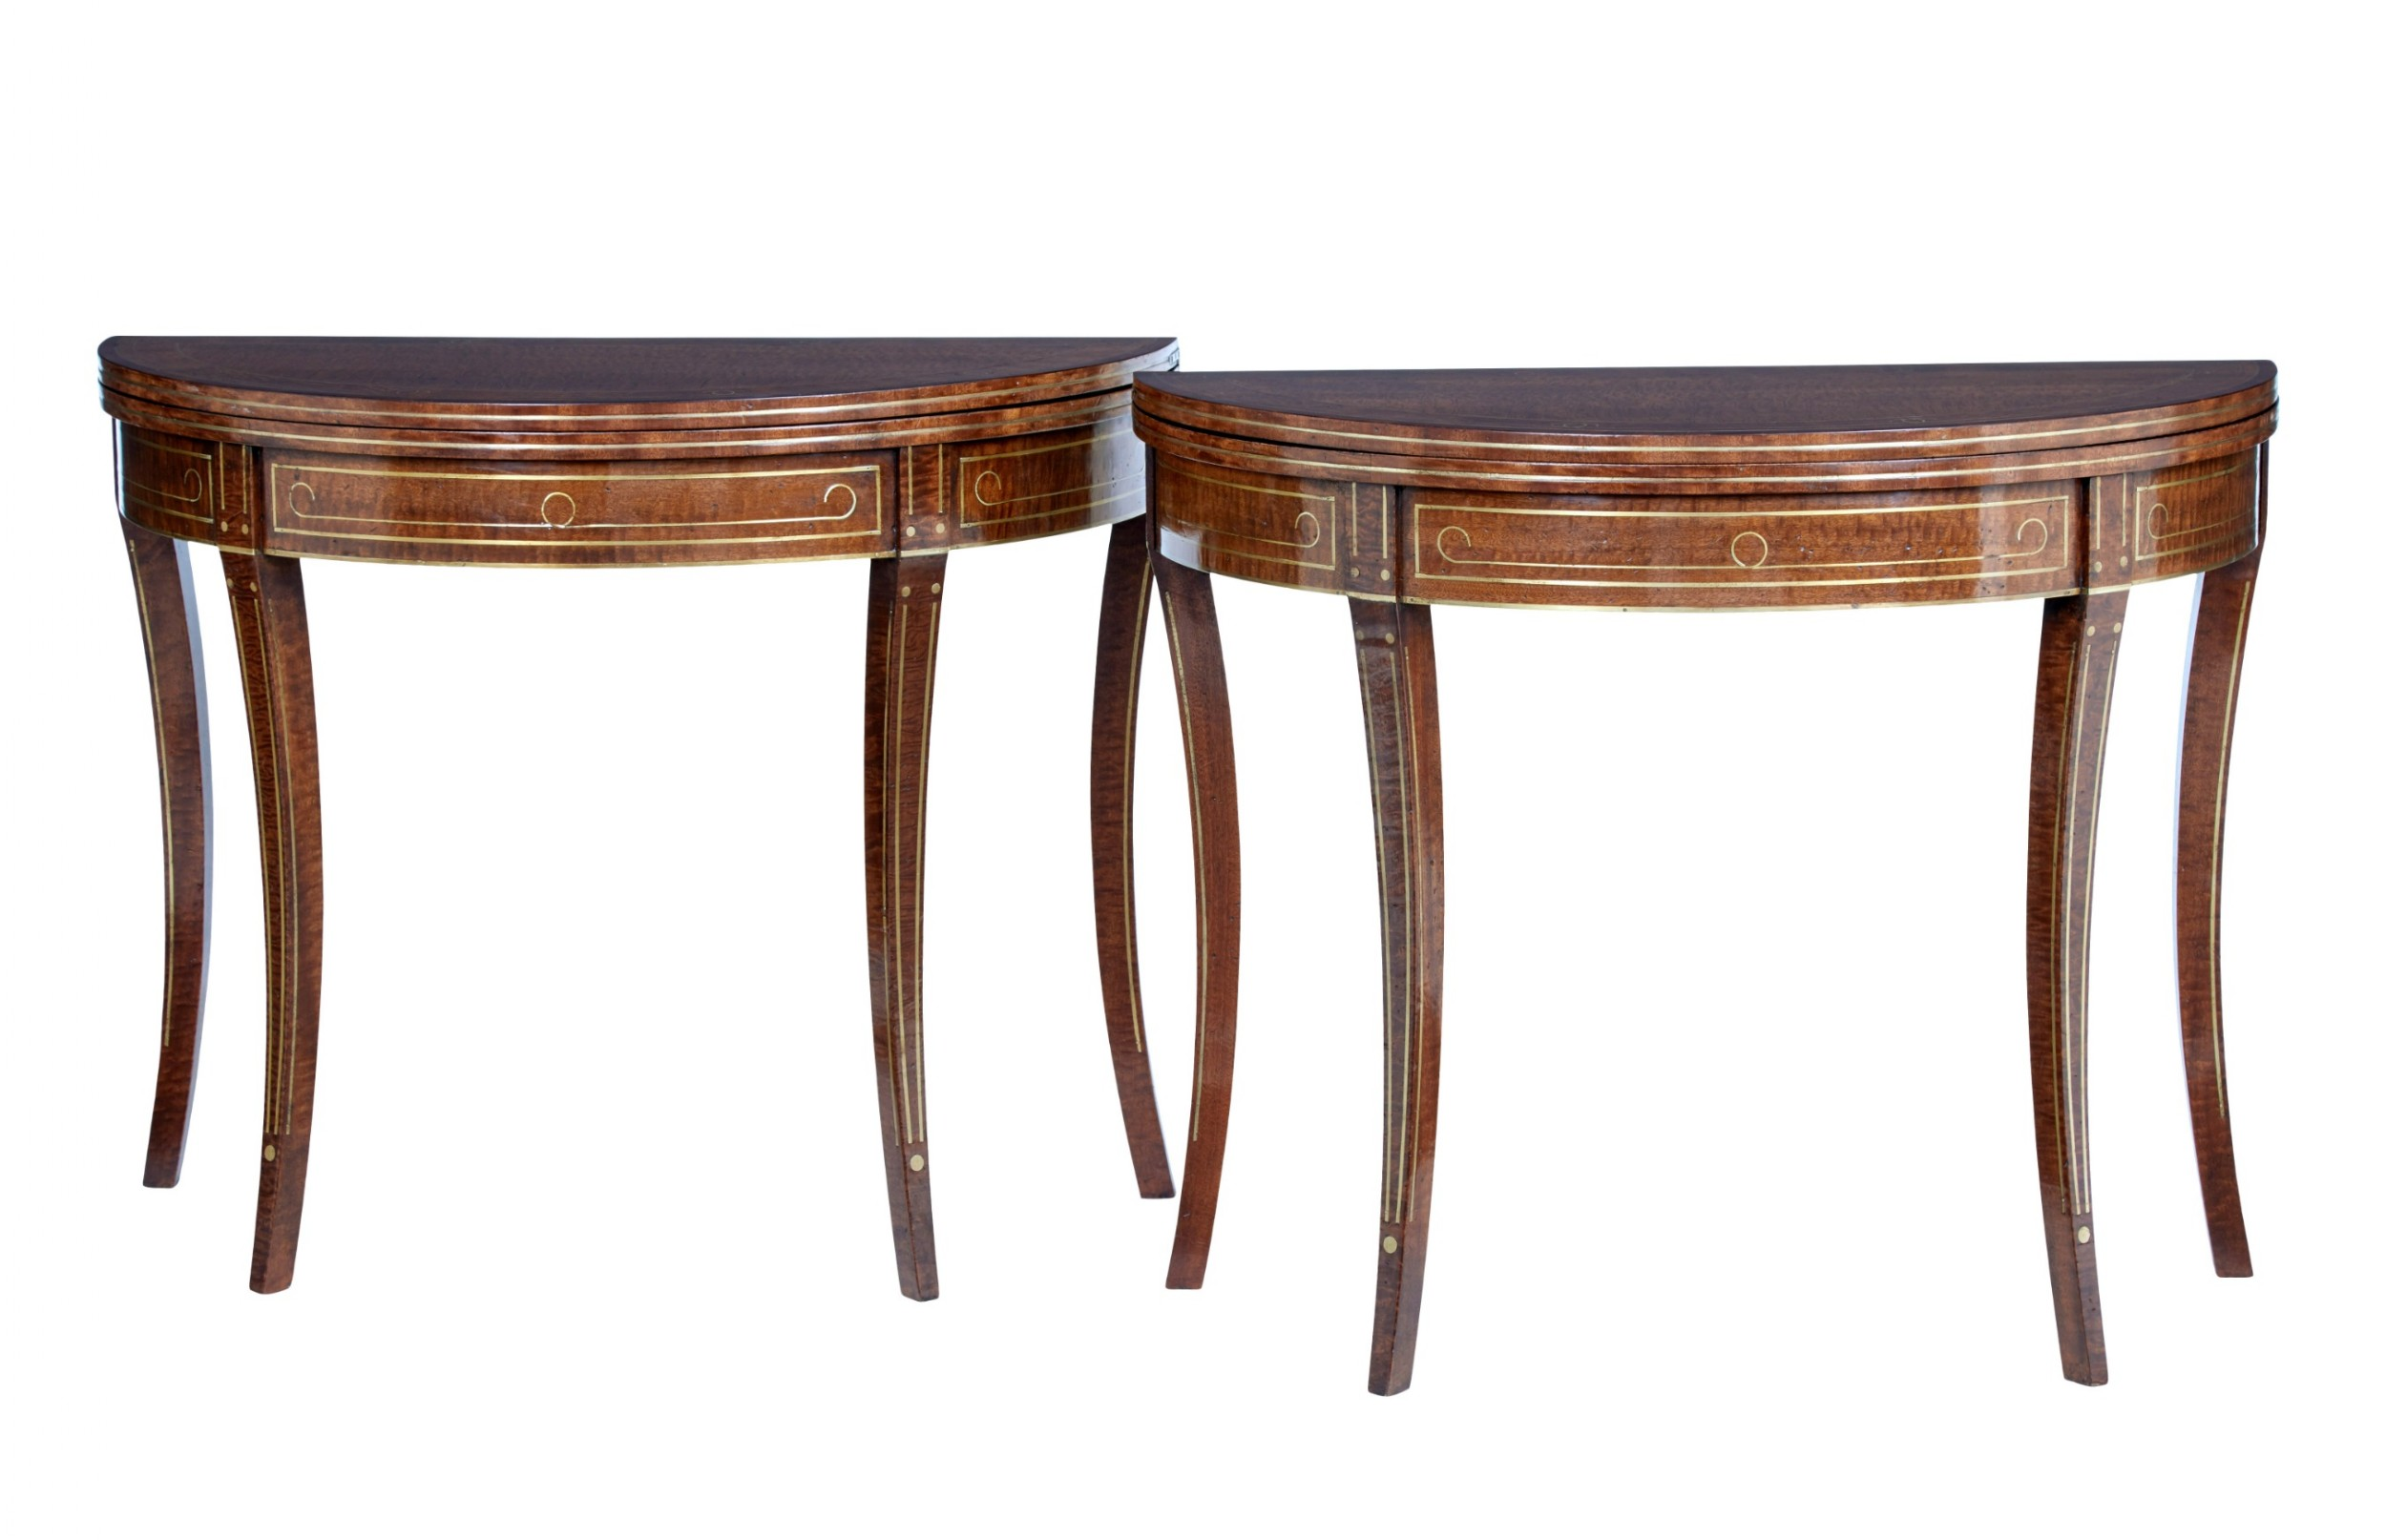 pair of 19th century william iv mahogany and brass inlaid tea tables